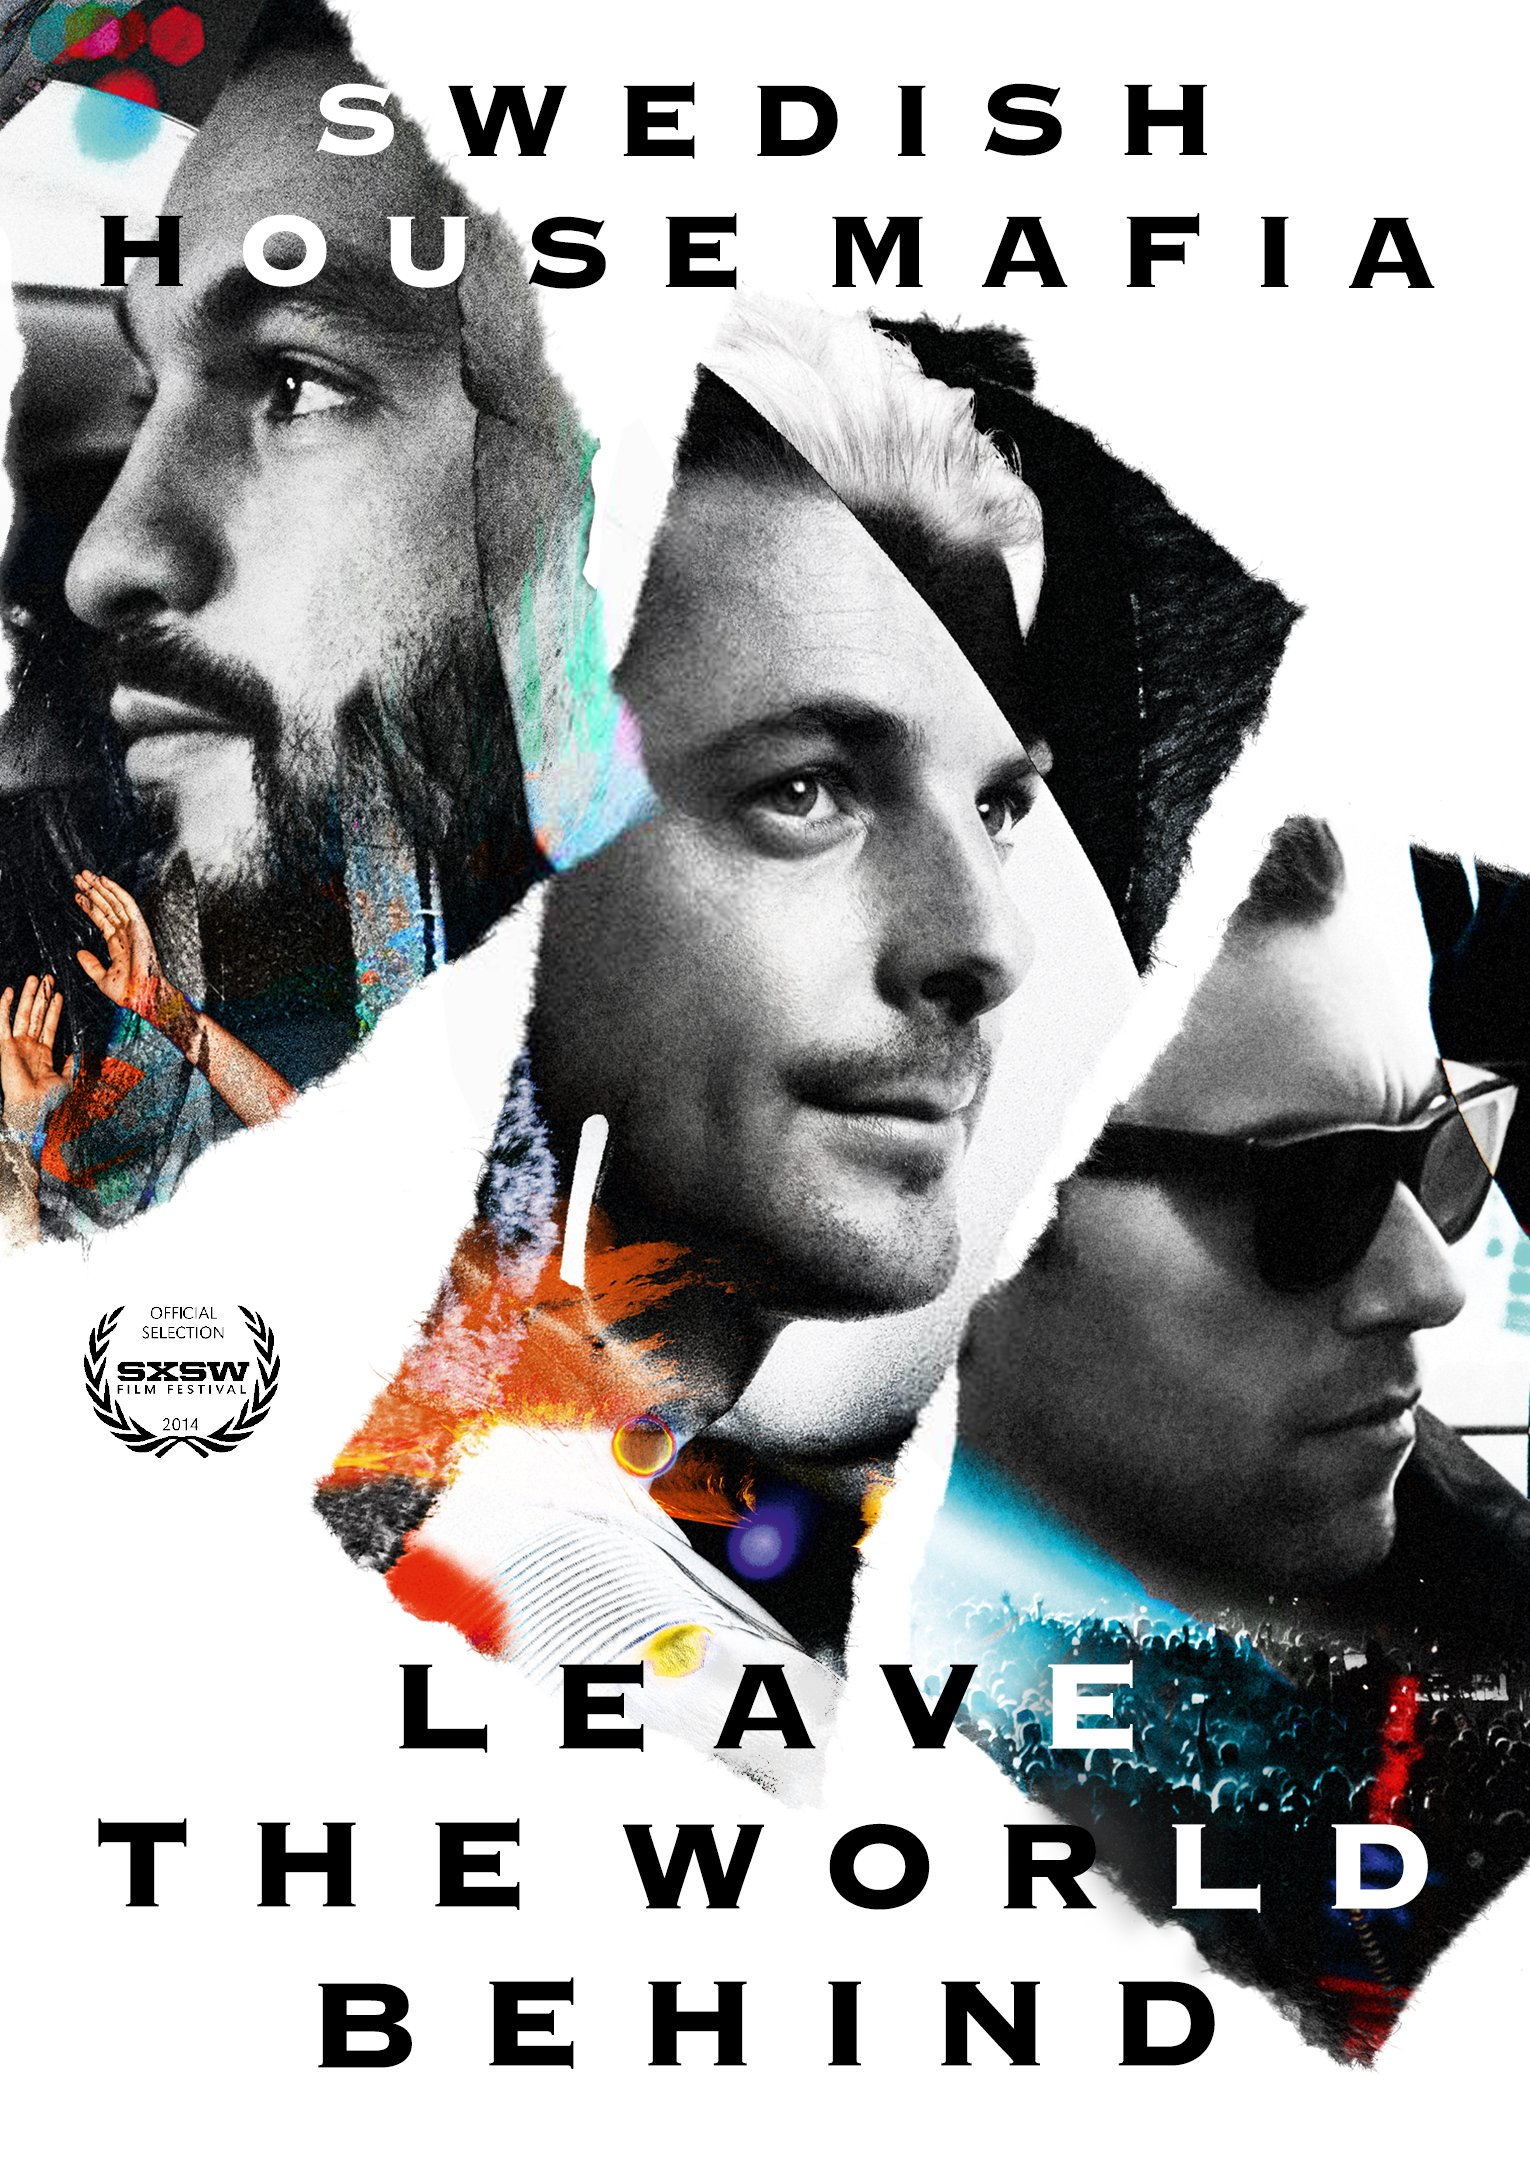 DVD : Swedish House Mafia - Leave The World Behind (DVD)